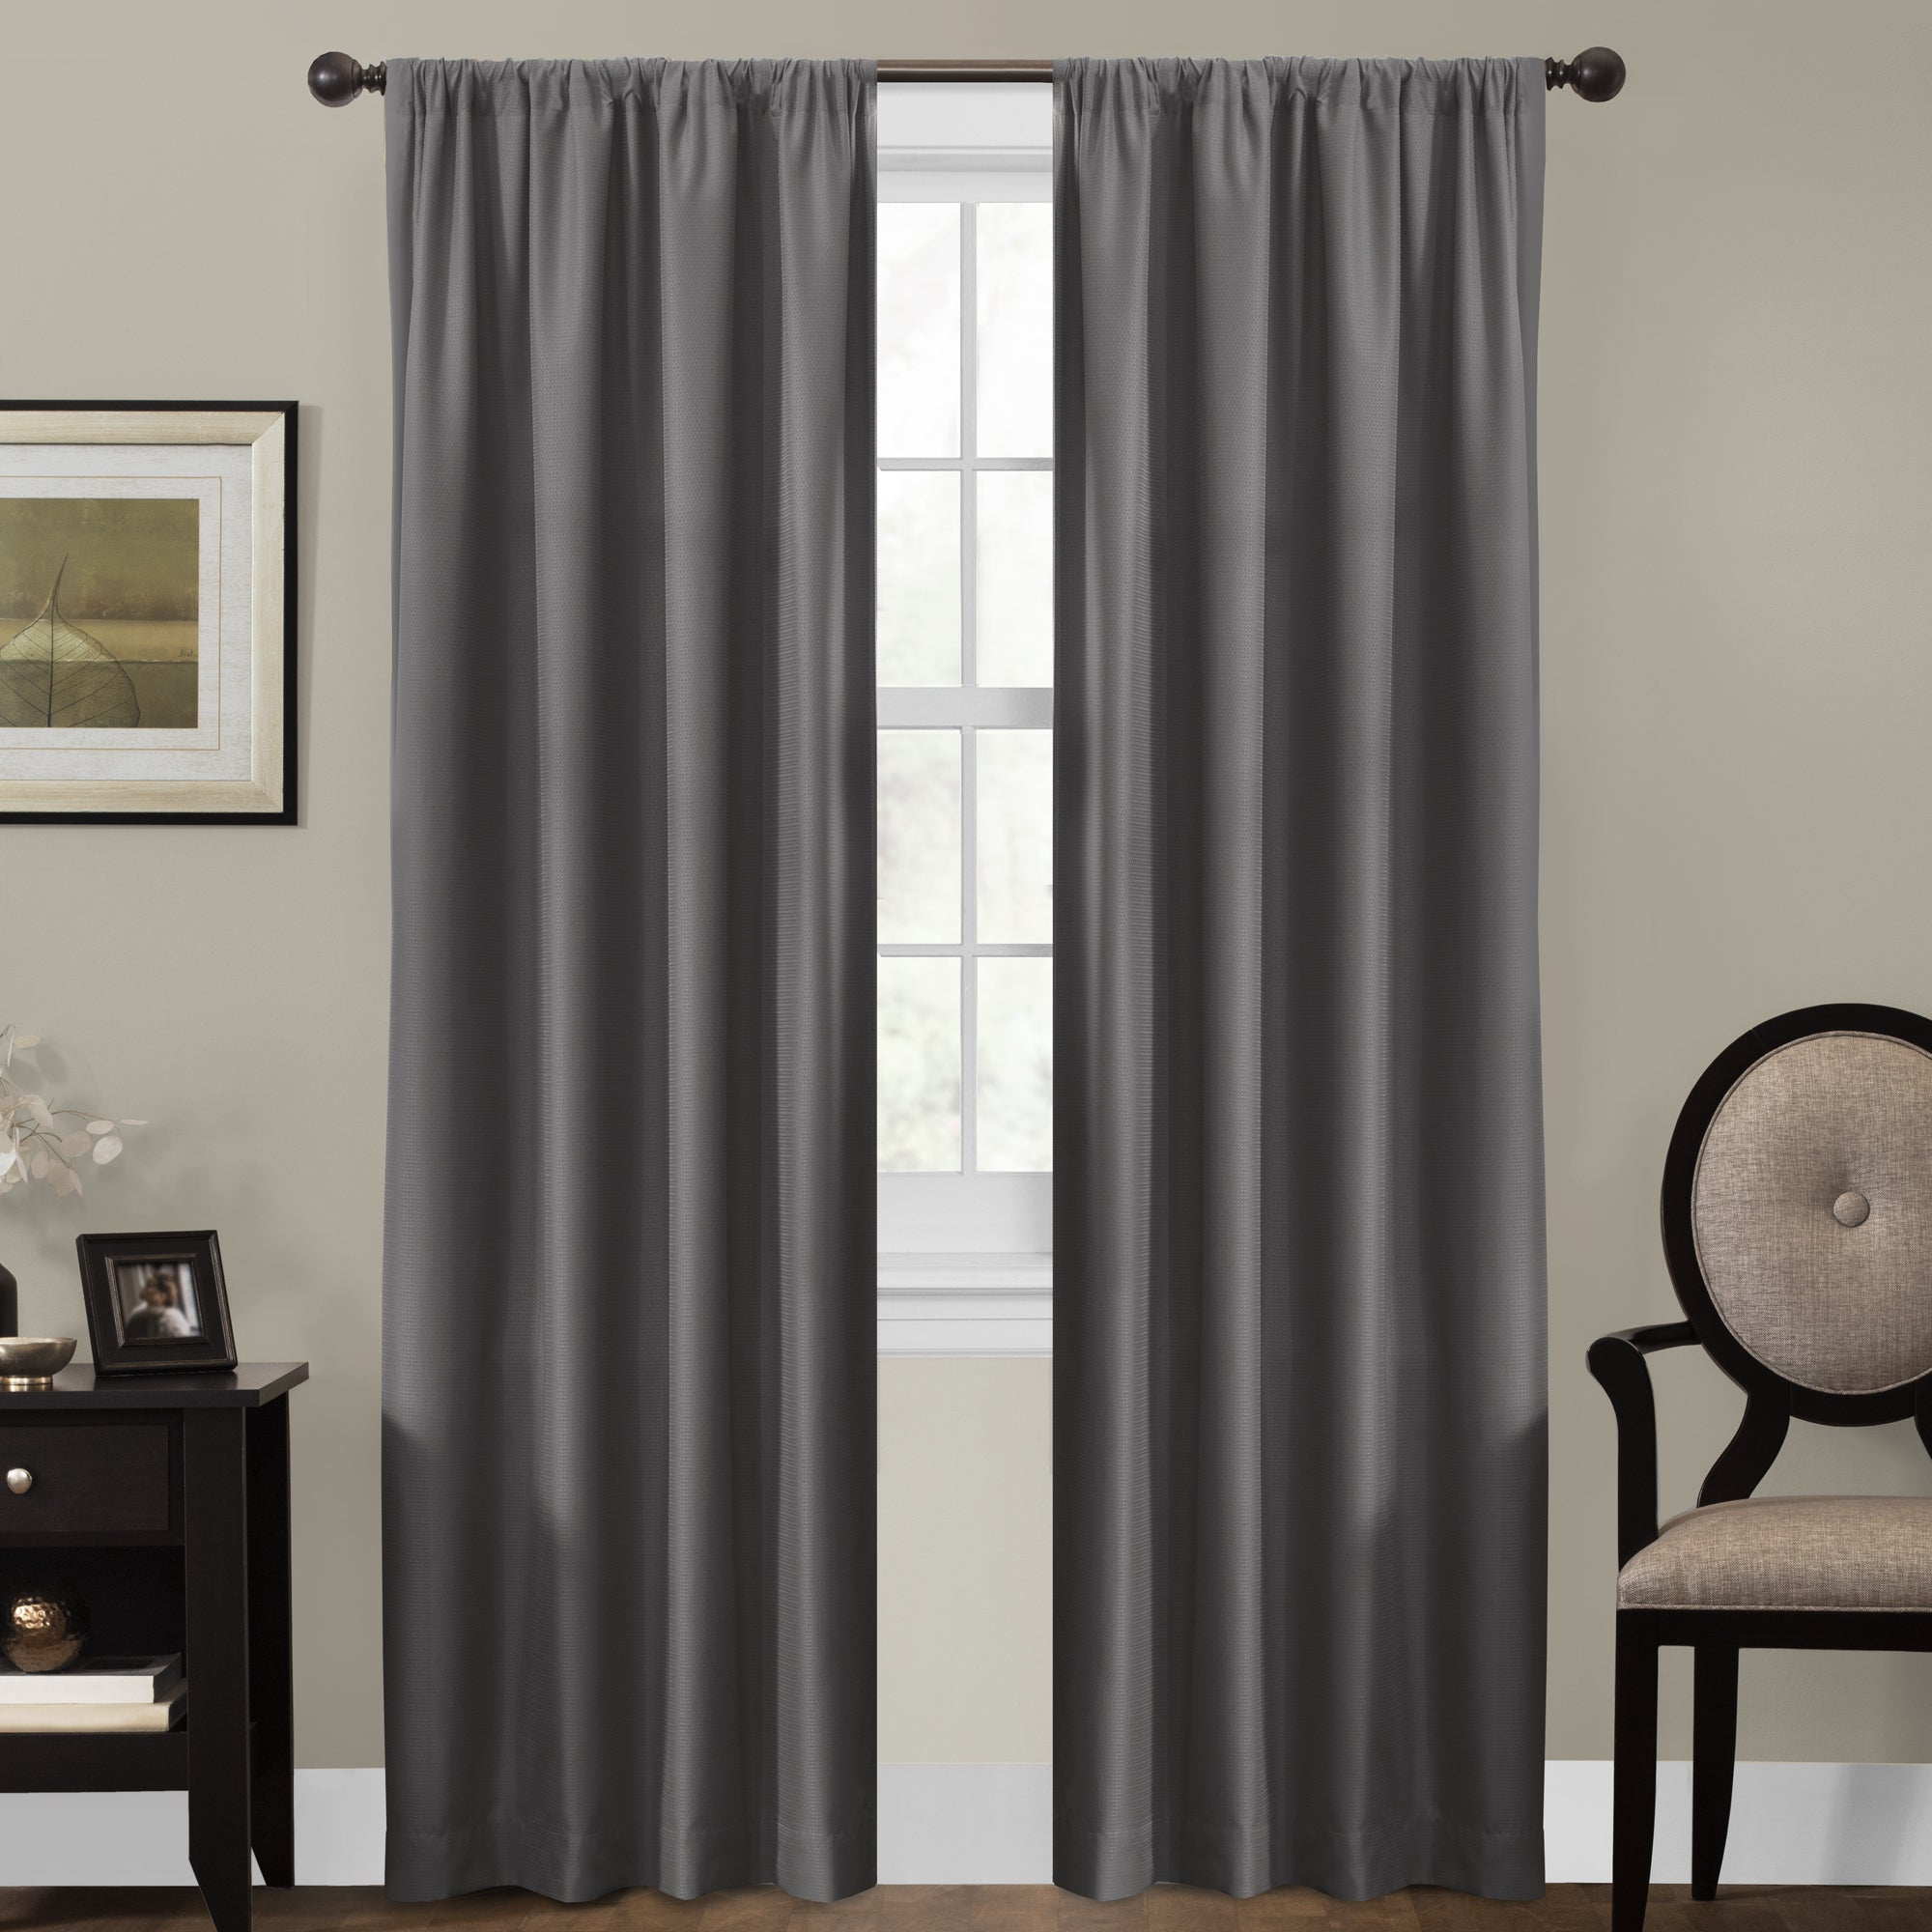 miller the toile l maison blinds d inch by hermine curtains energoresurs cotton inchl curtain